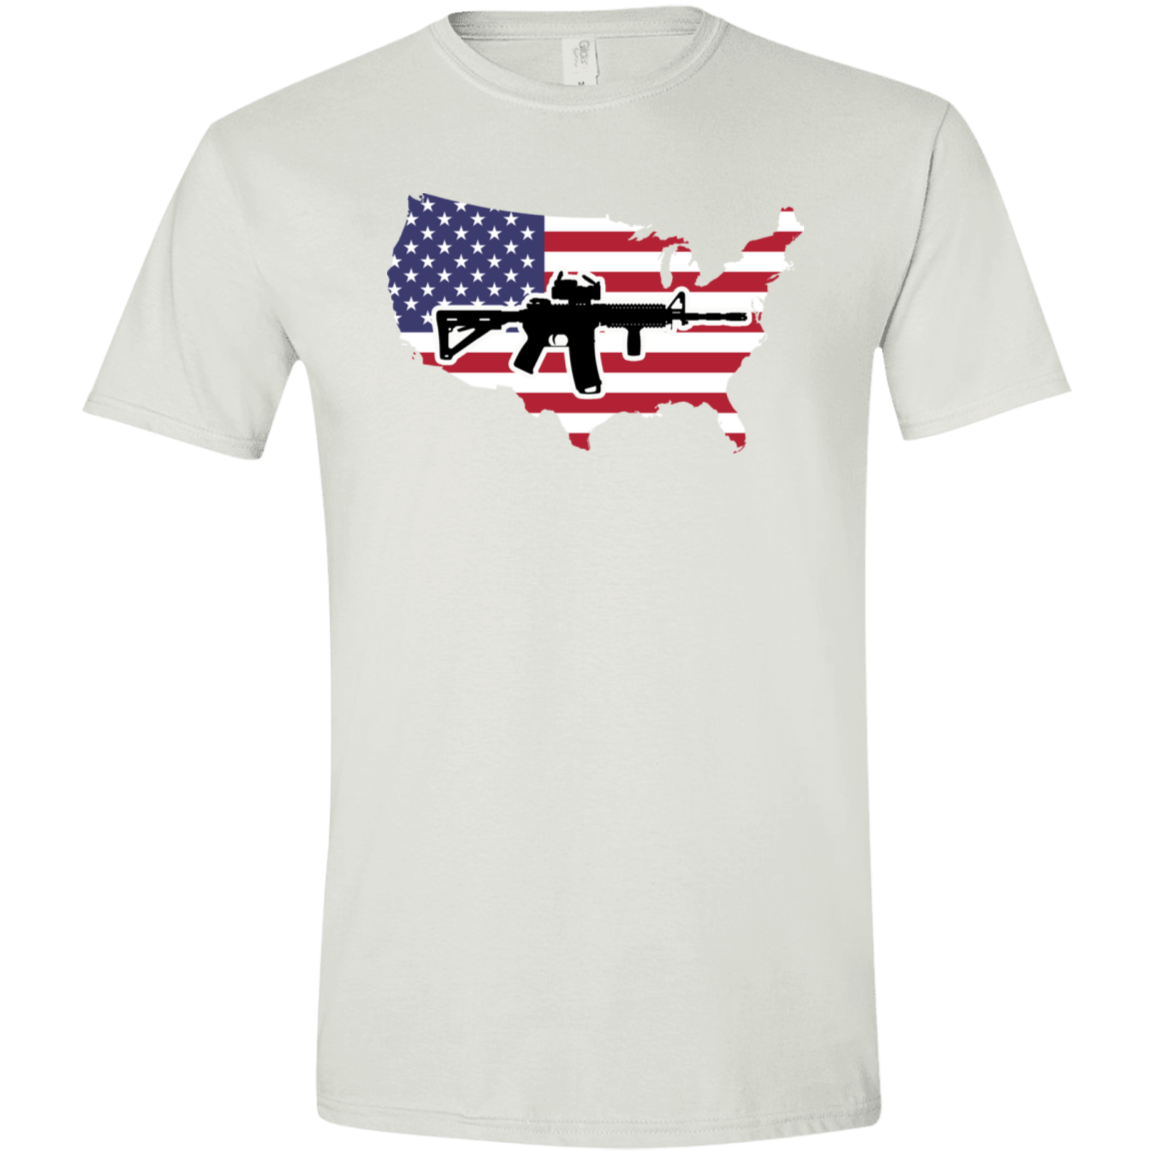 2A USA Softstyle T-Shirt